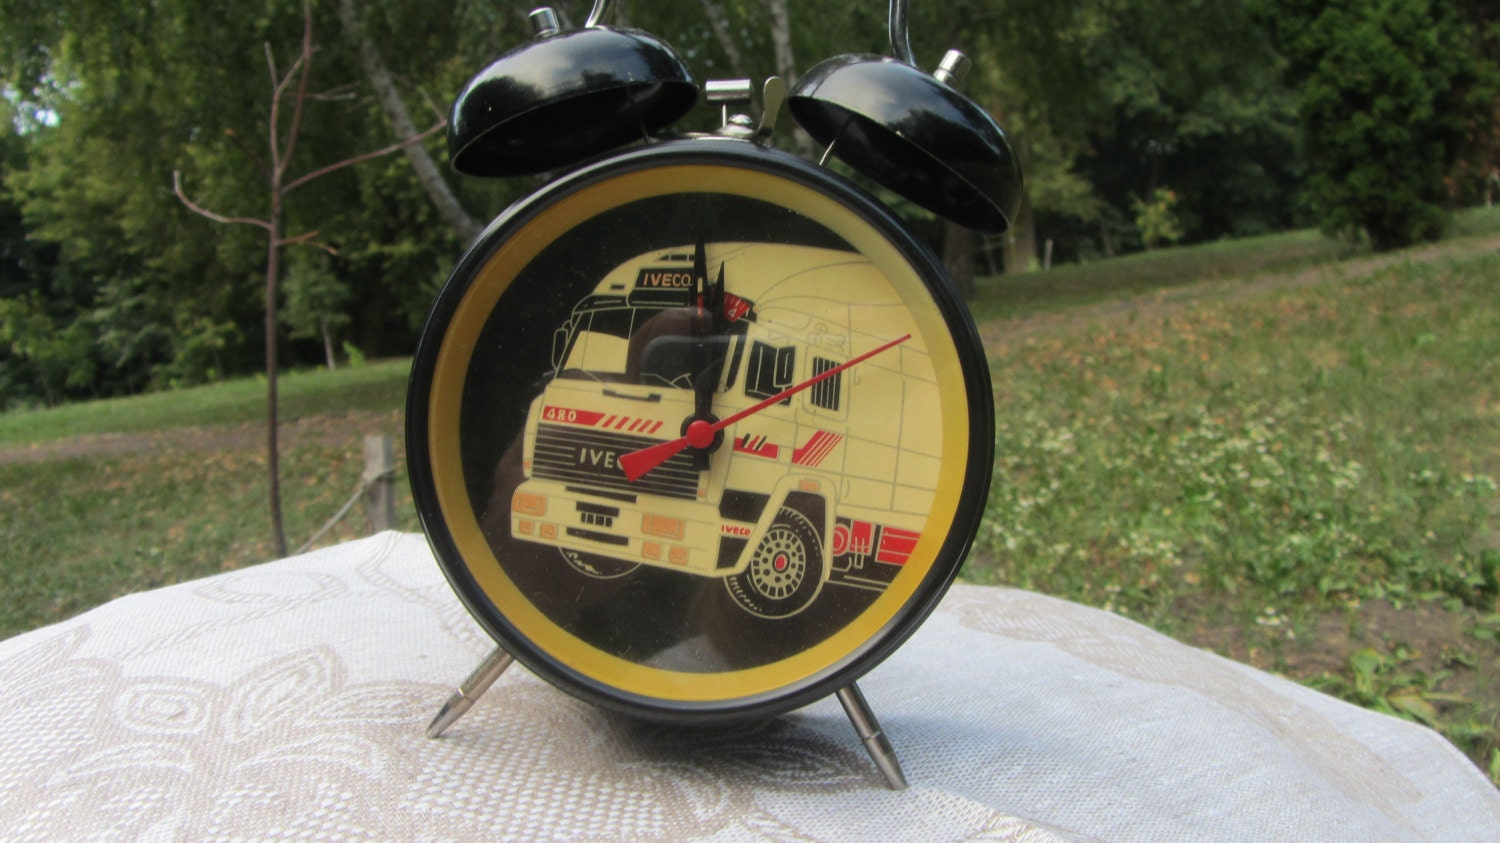 New Old Stock 90's Clock, Iveco Vintage Clock, alarm clock with twin bells, Wind